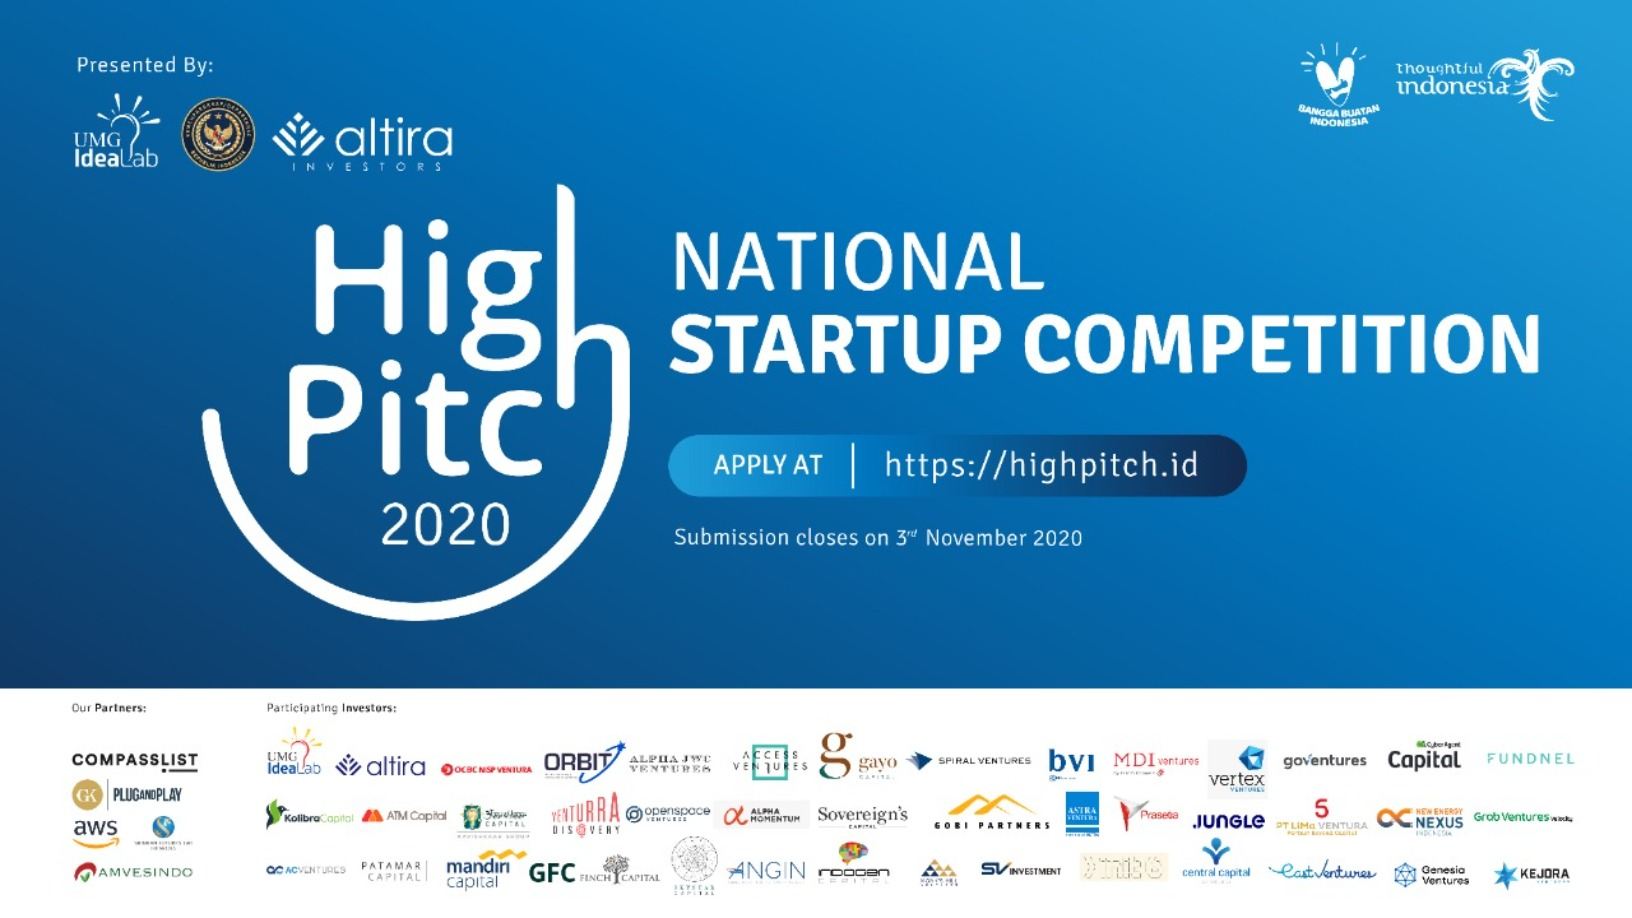 Indonesia launches national pitch competition HighPitch 2020 to re-energize its startup ecosystem